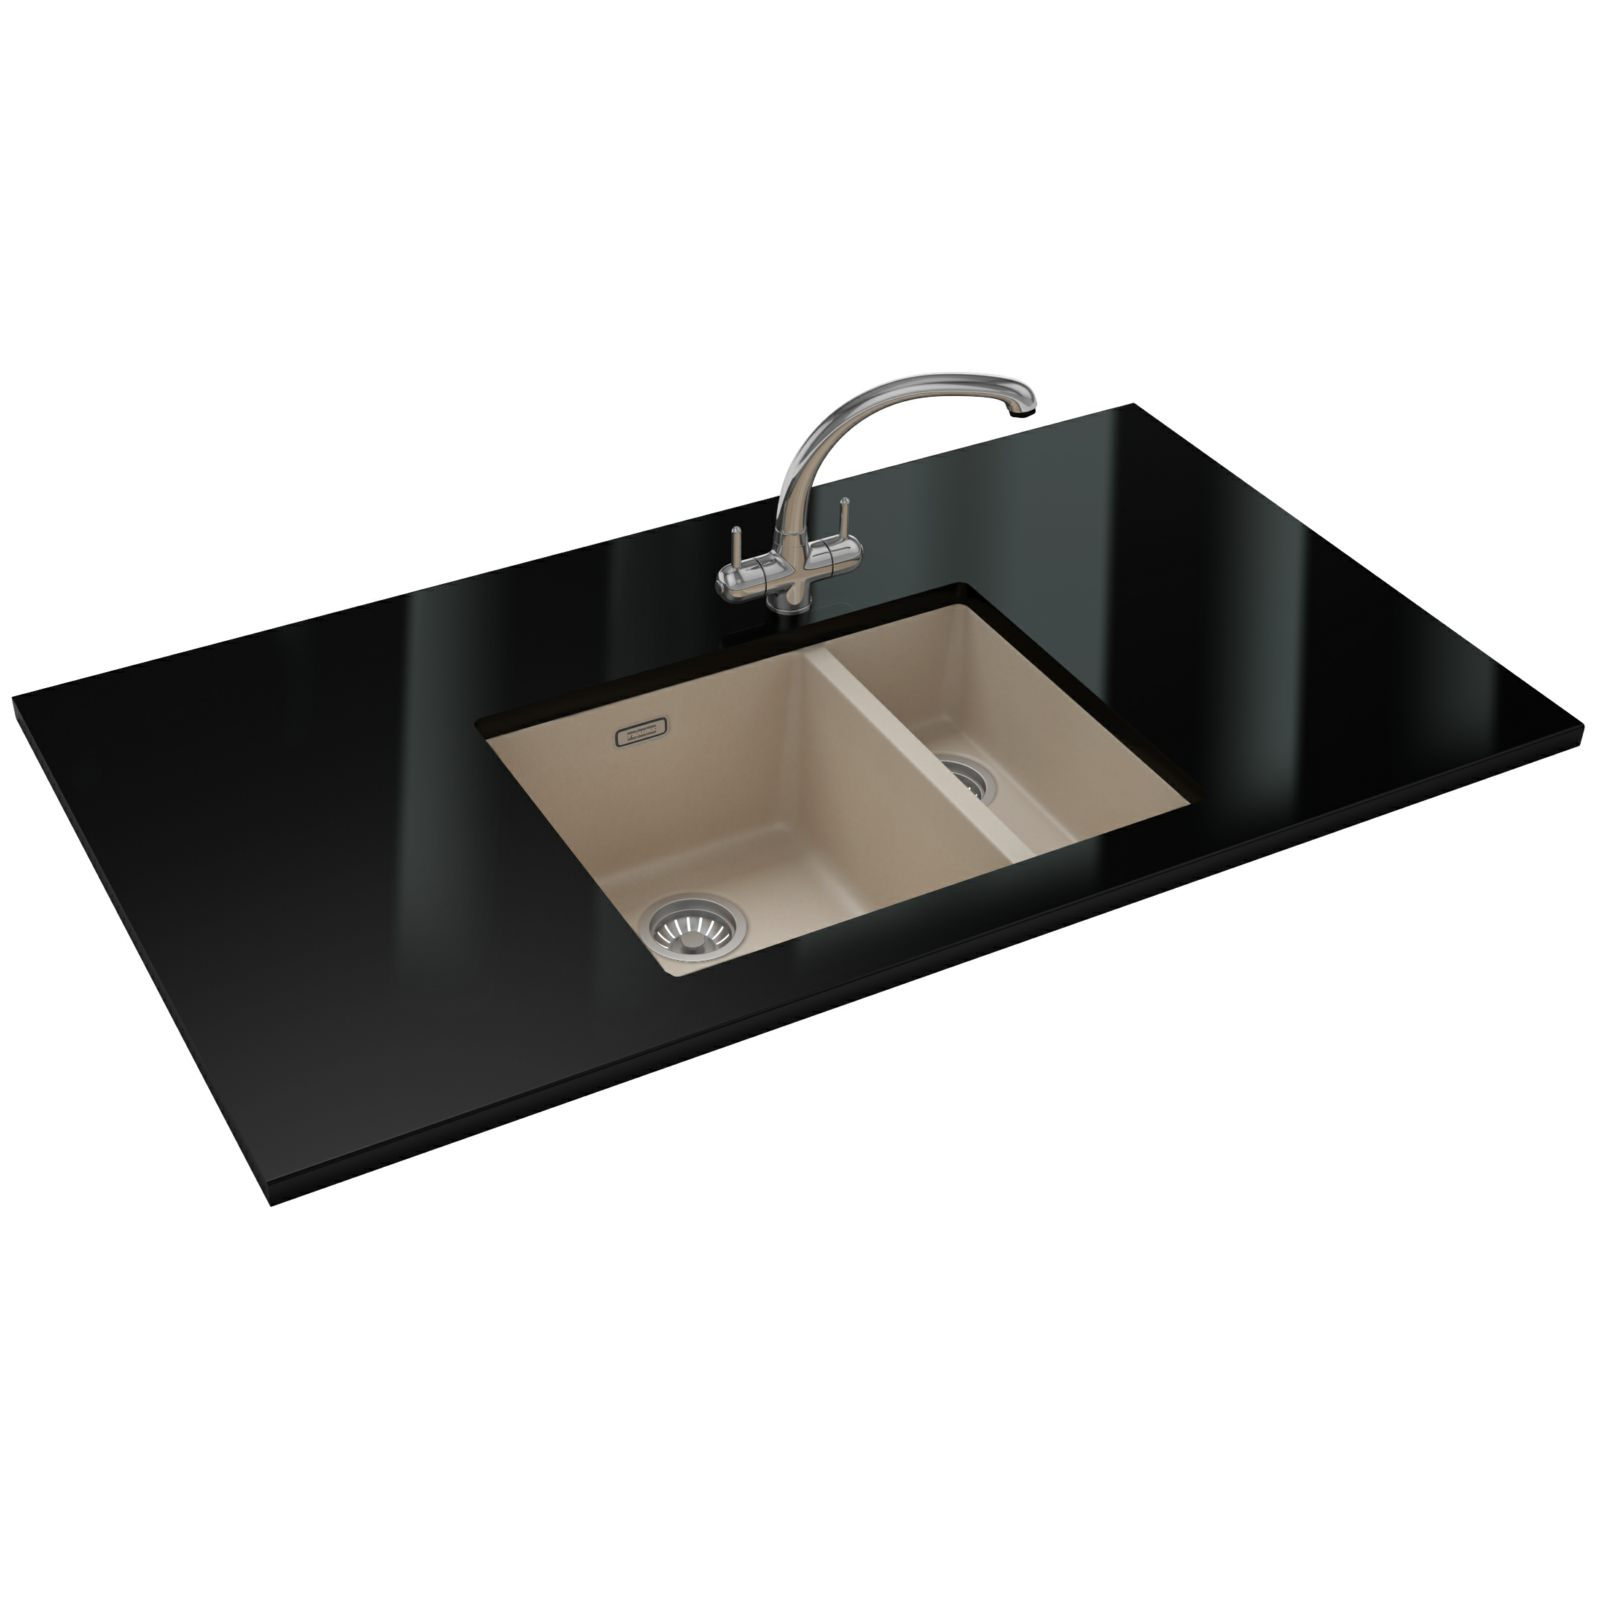 Franke Sinks And Taps : Franke Sirius Propack SID 160 Tectonite Coffee Sink And Tap 125.0252 ...